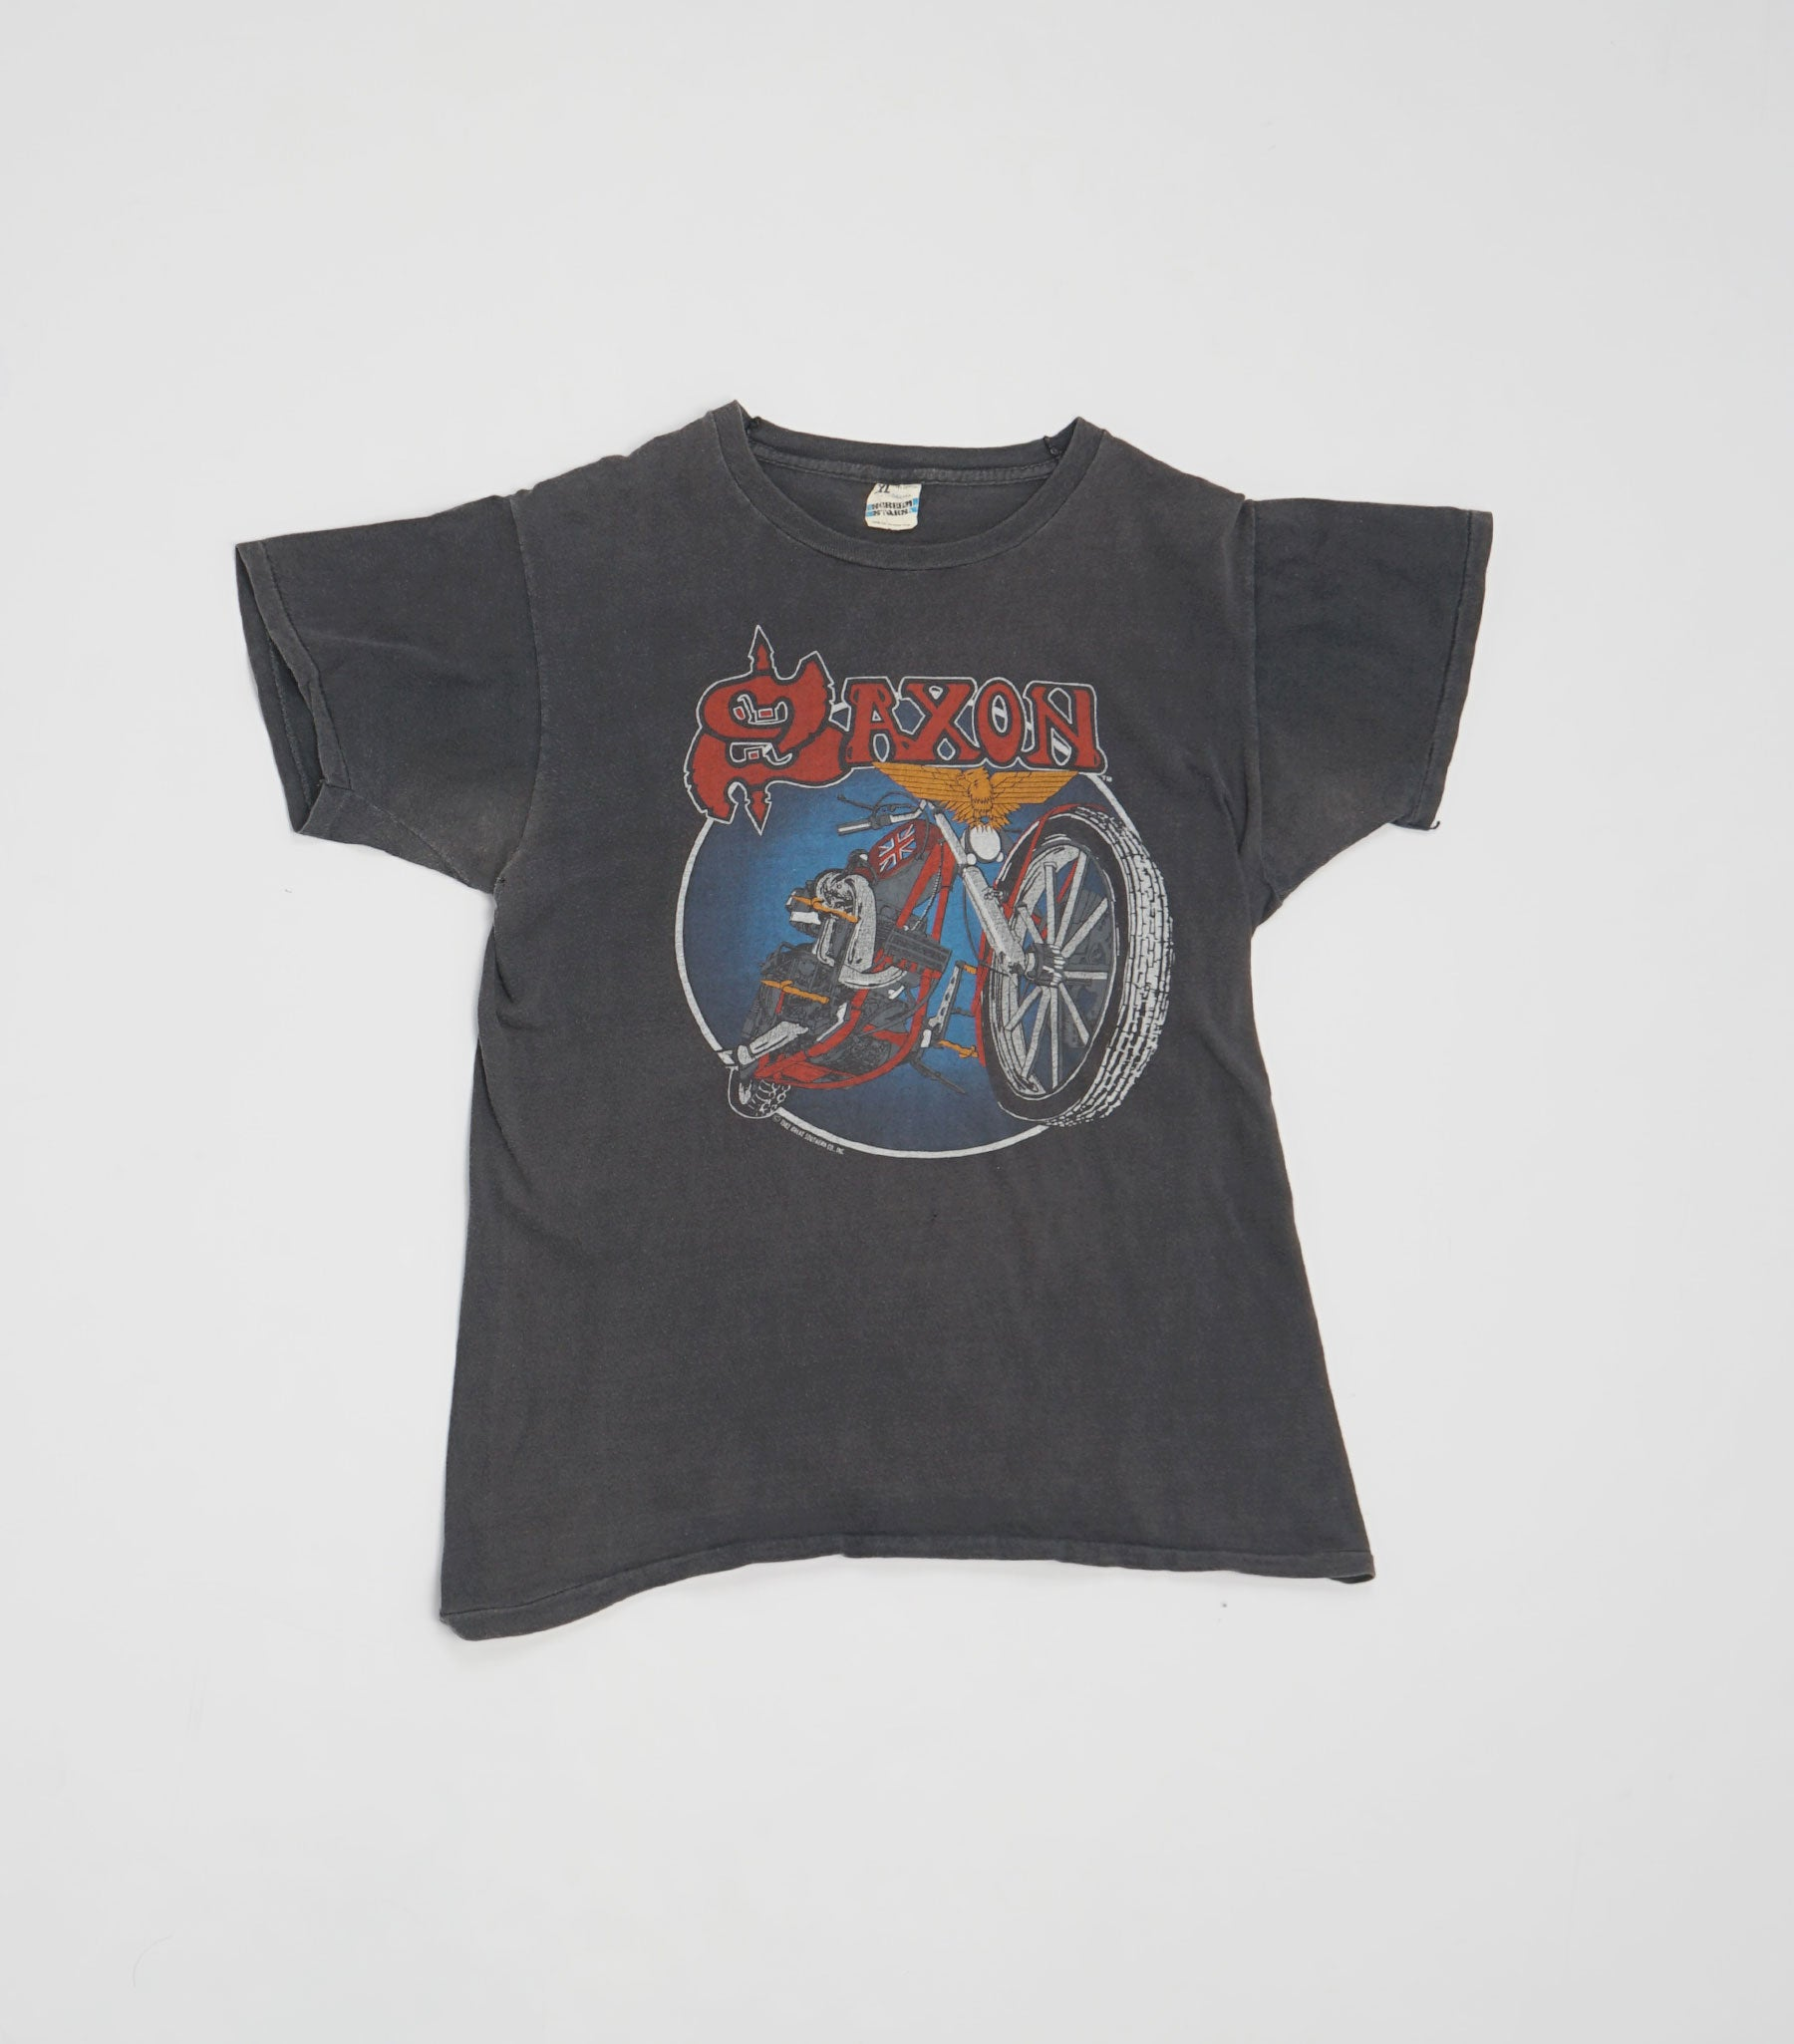 1982 Denim and Leather USA Tour Tee